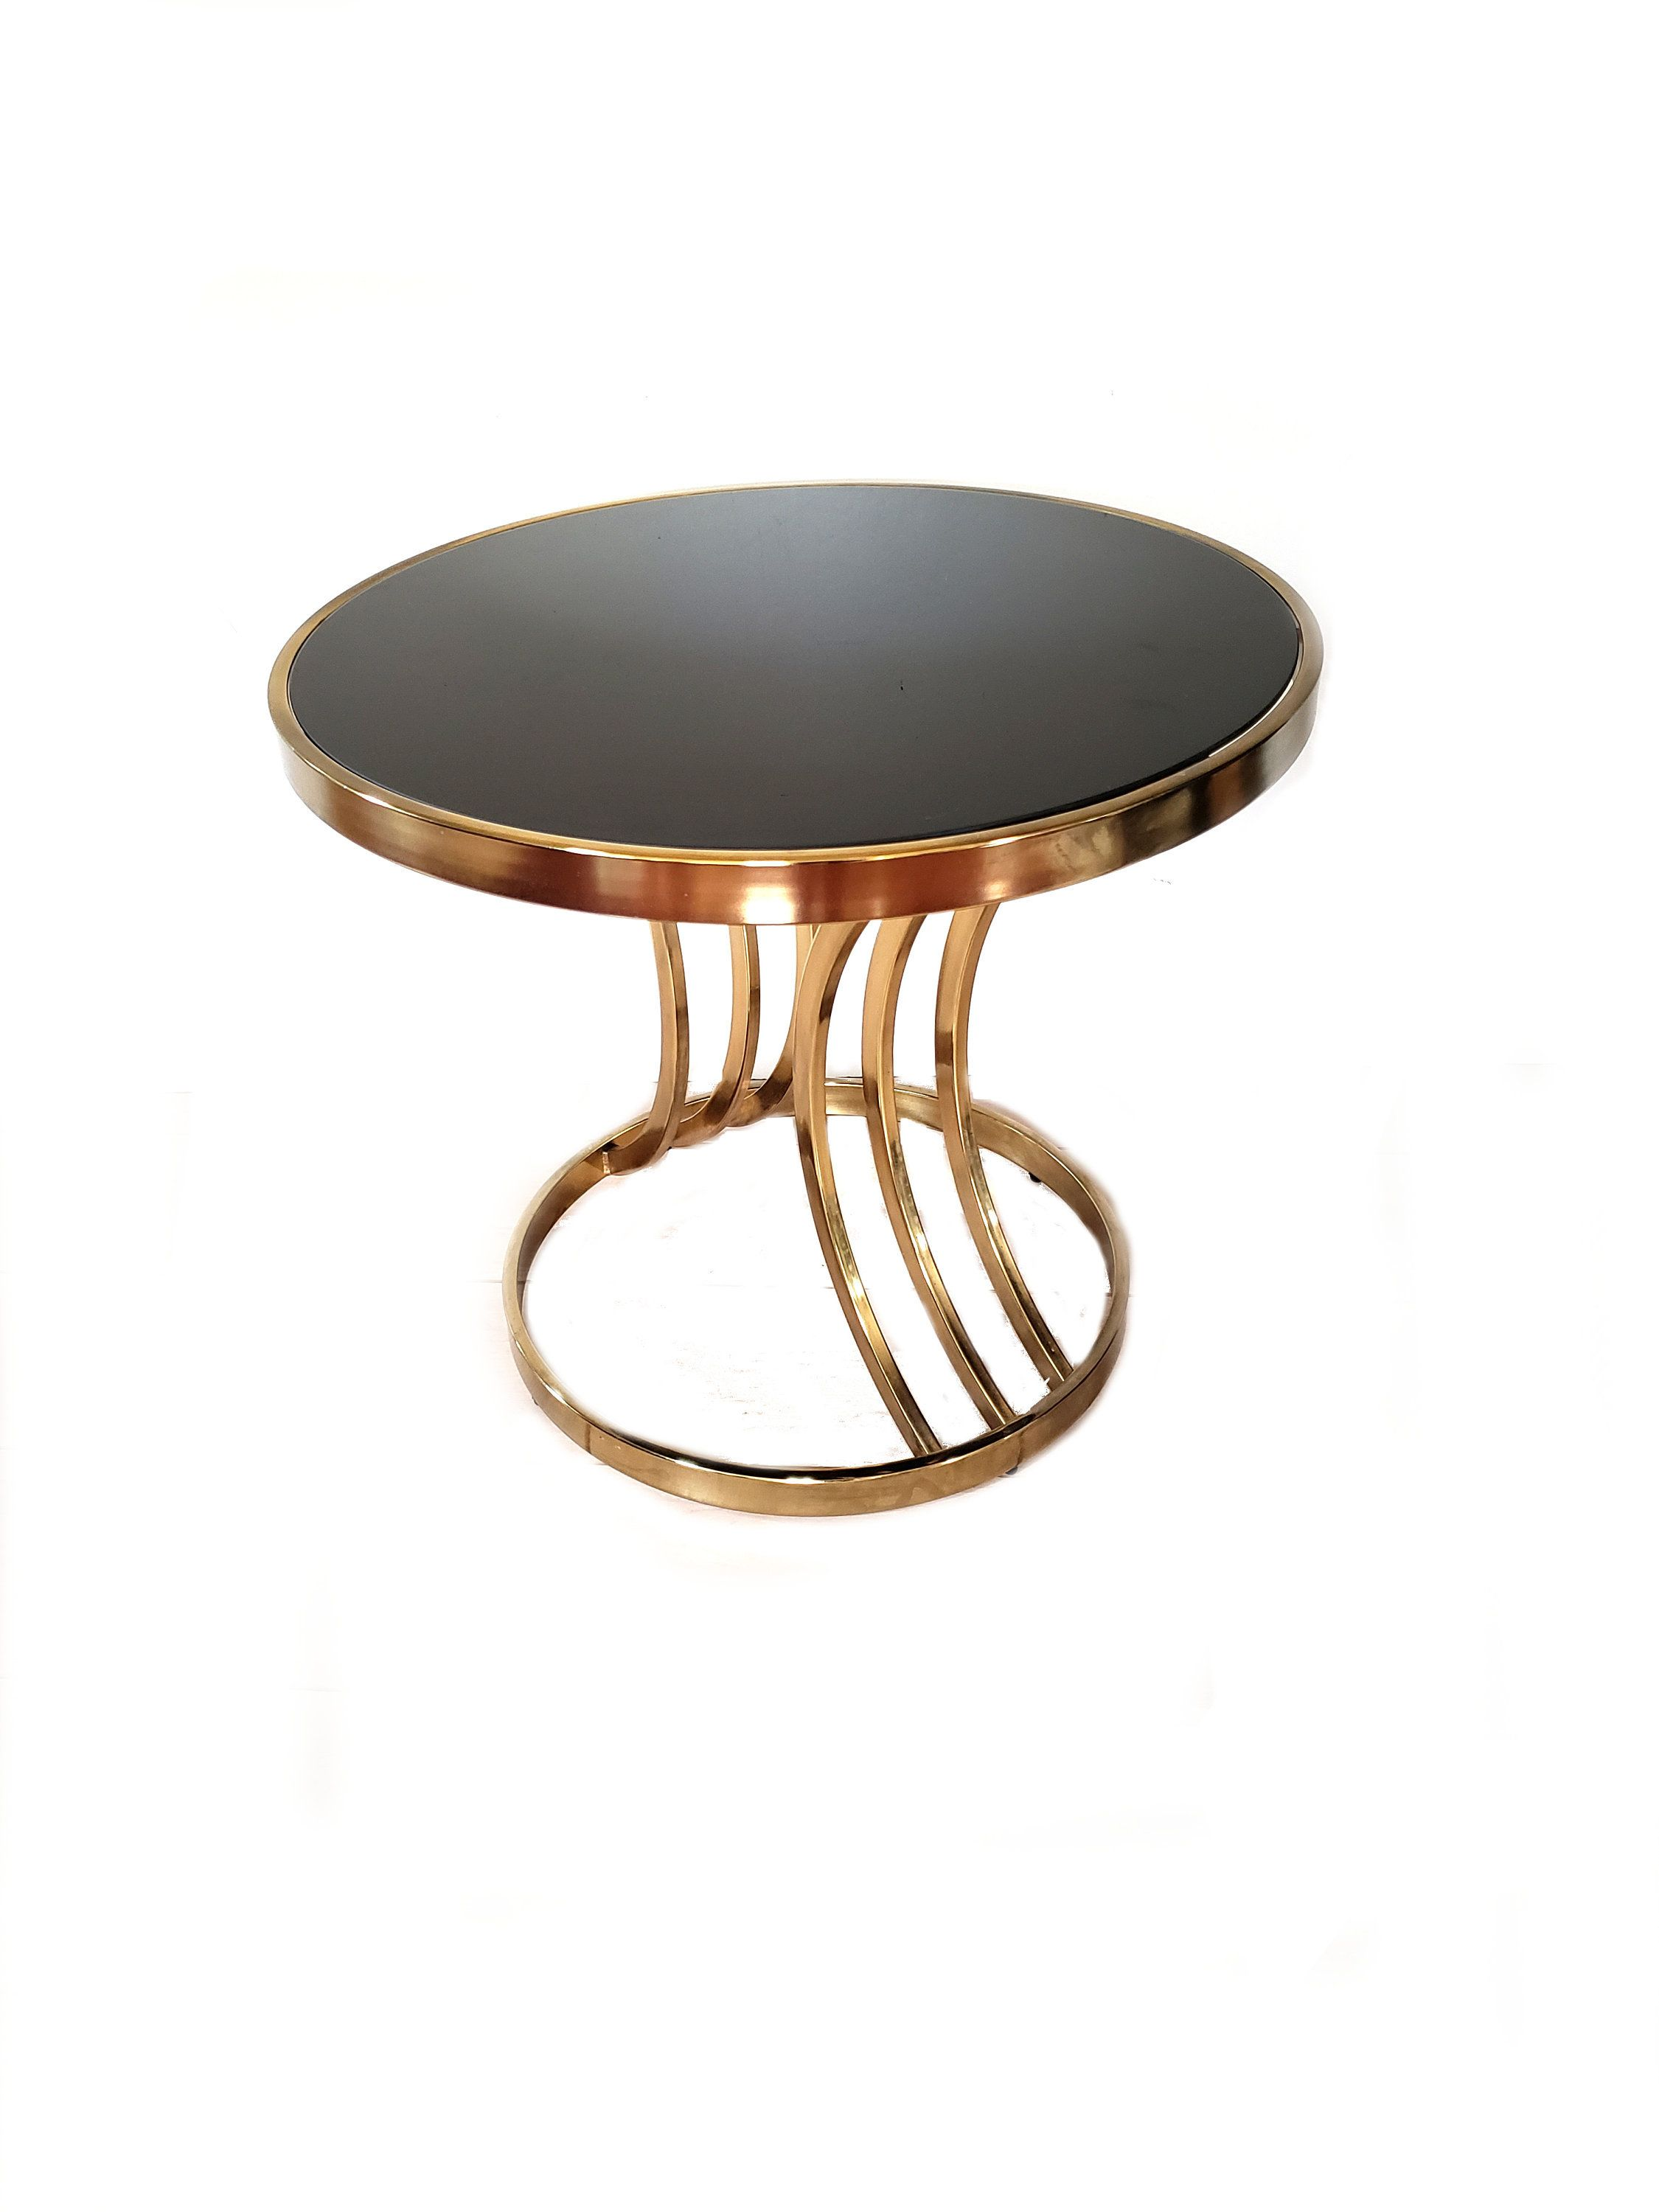 vintage side table accent end dia design round institute america brass and smoked glass hollywood regency kitchenette furniture winsome safavieh couture koncept lighting antique